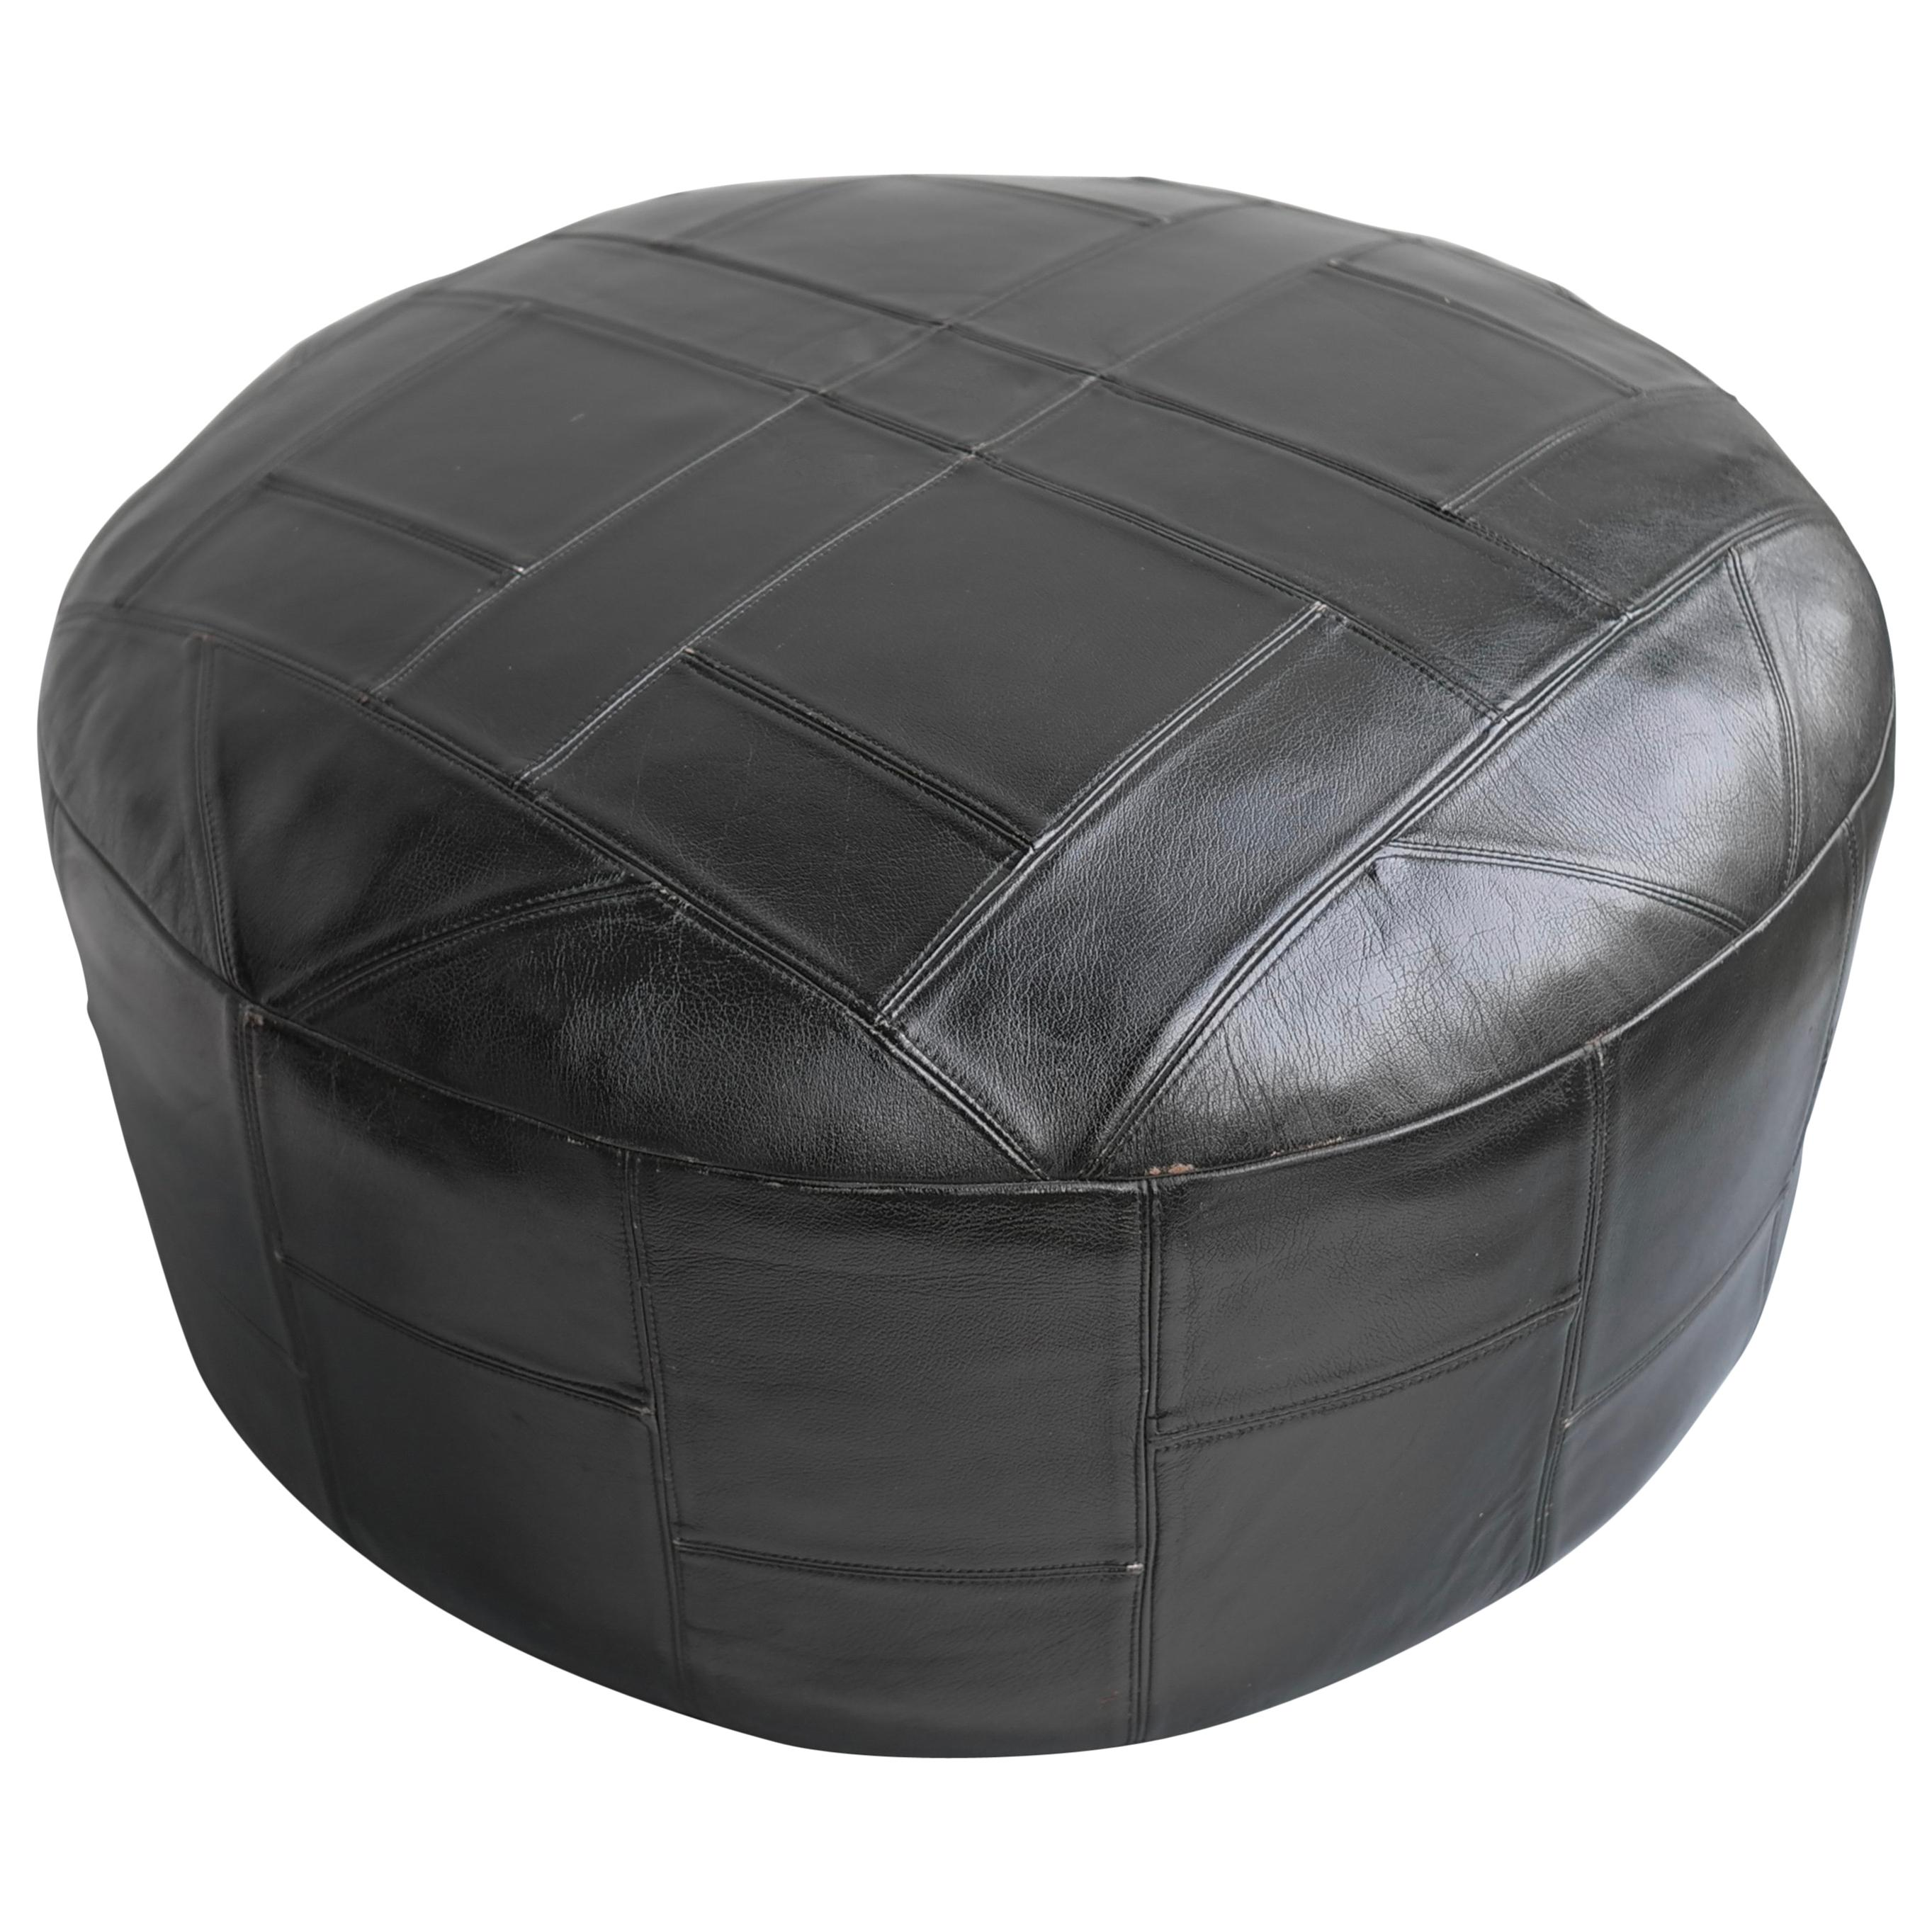 Large Midcentury Patchwork Pouf in Black Leather